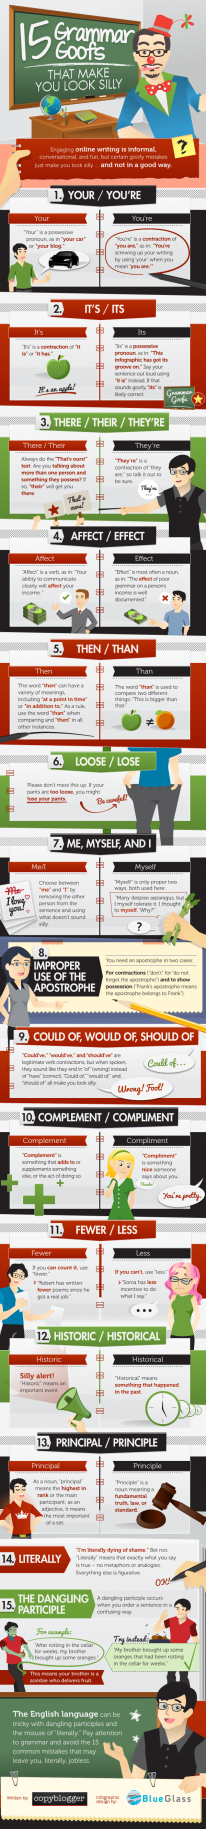 15 Grammar Goofs That Make You Look Silly - Infographic